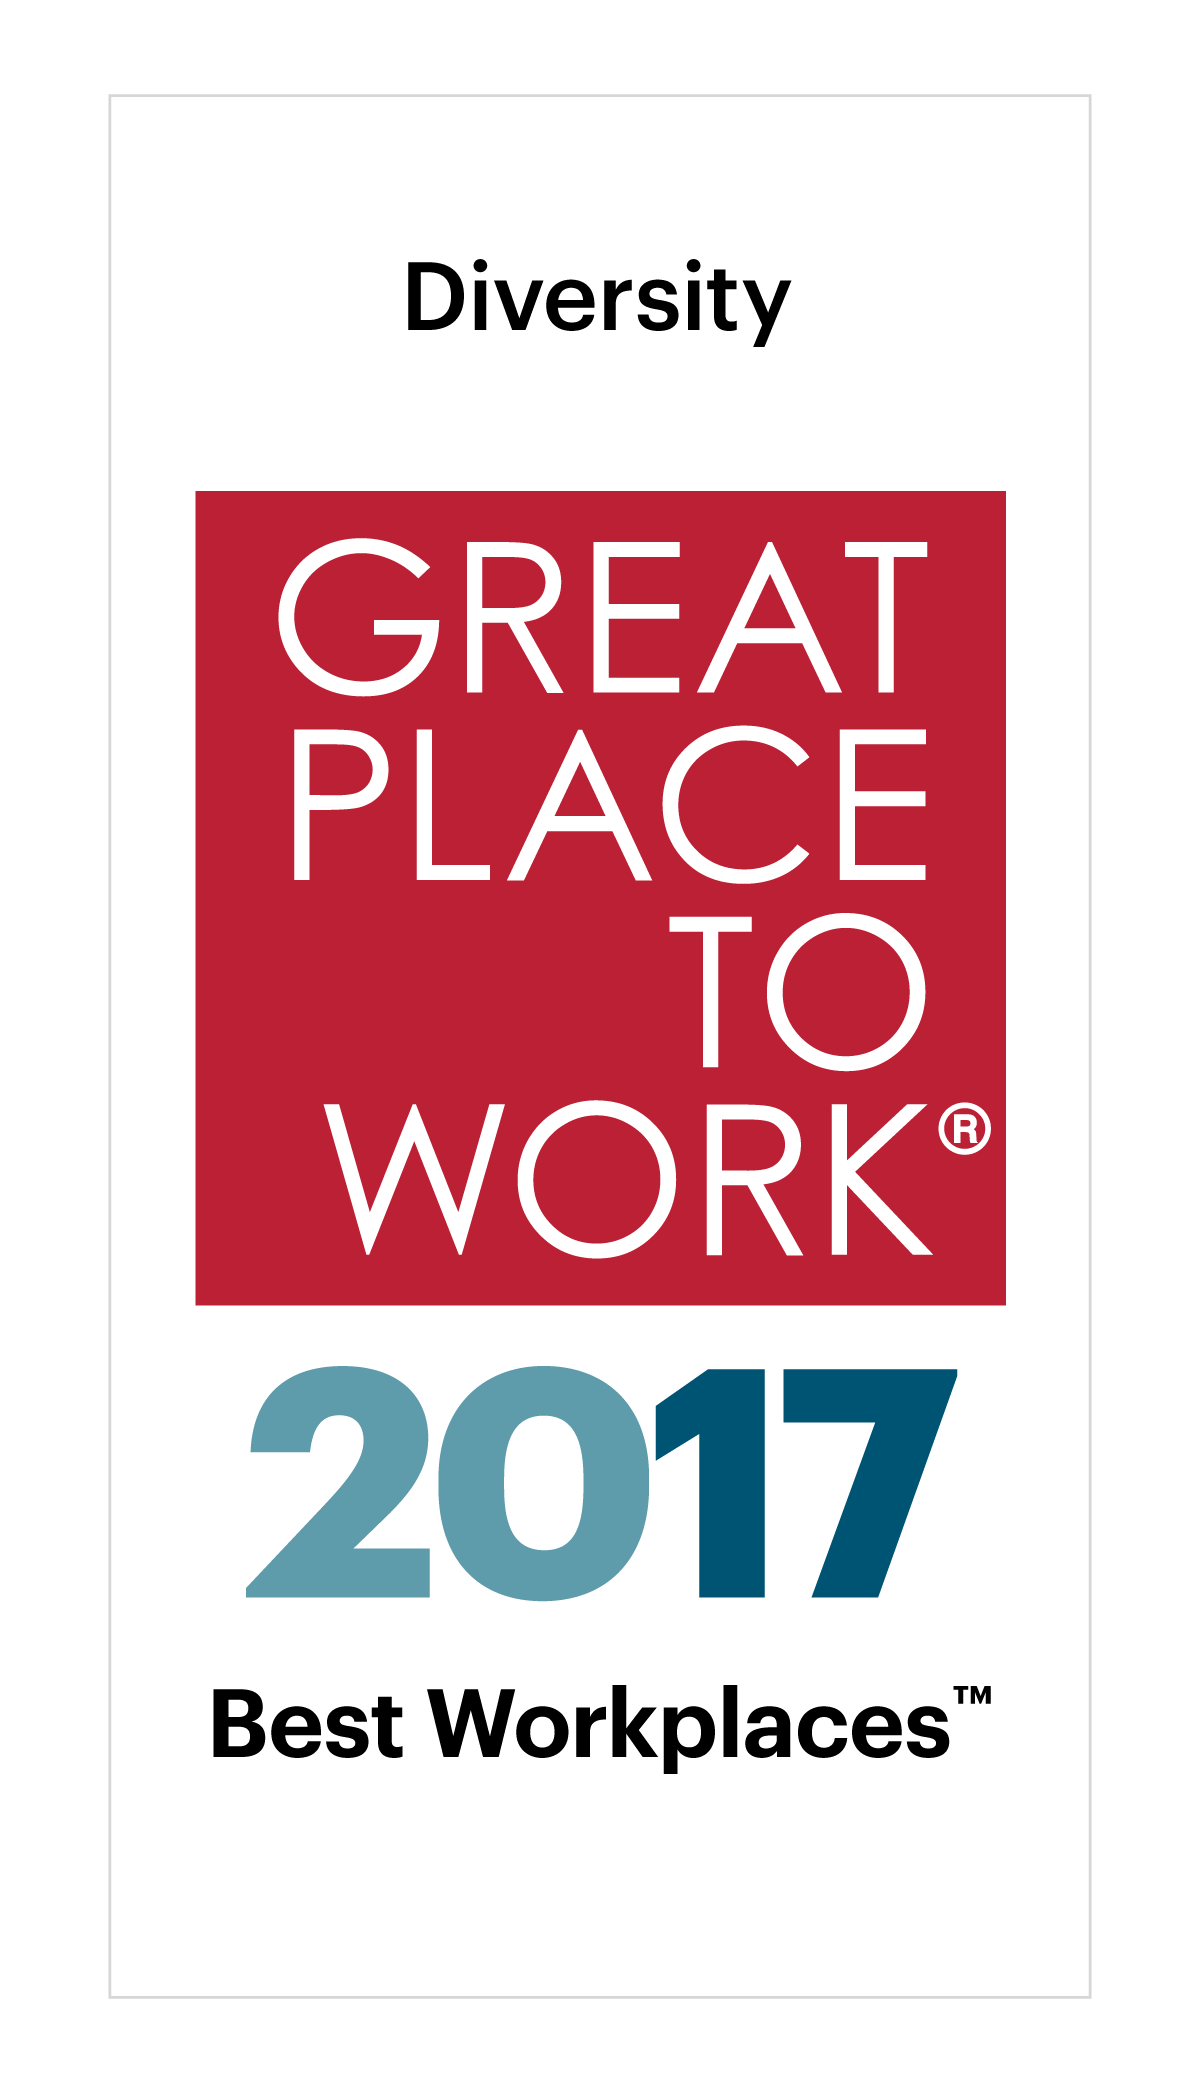 Best Workplaces for Diversity 2017